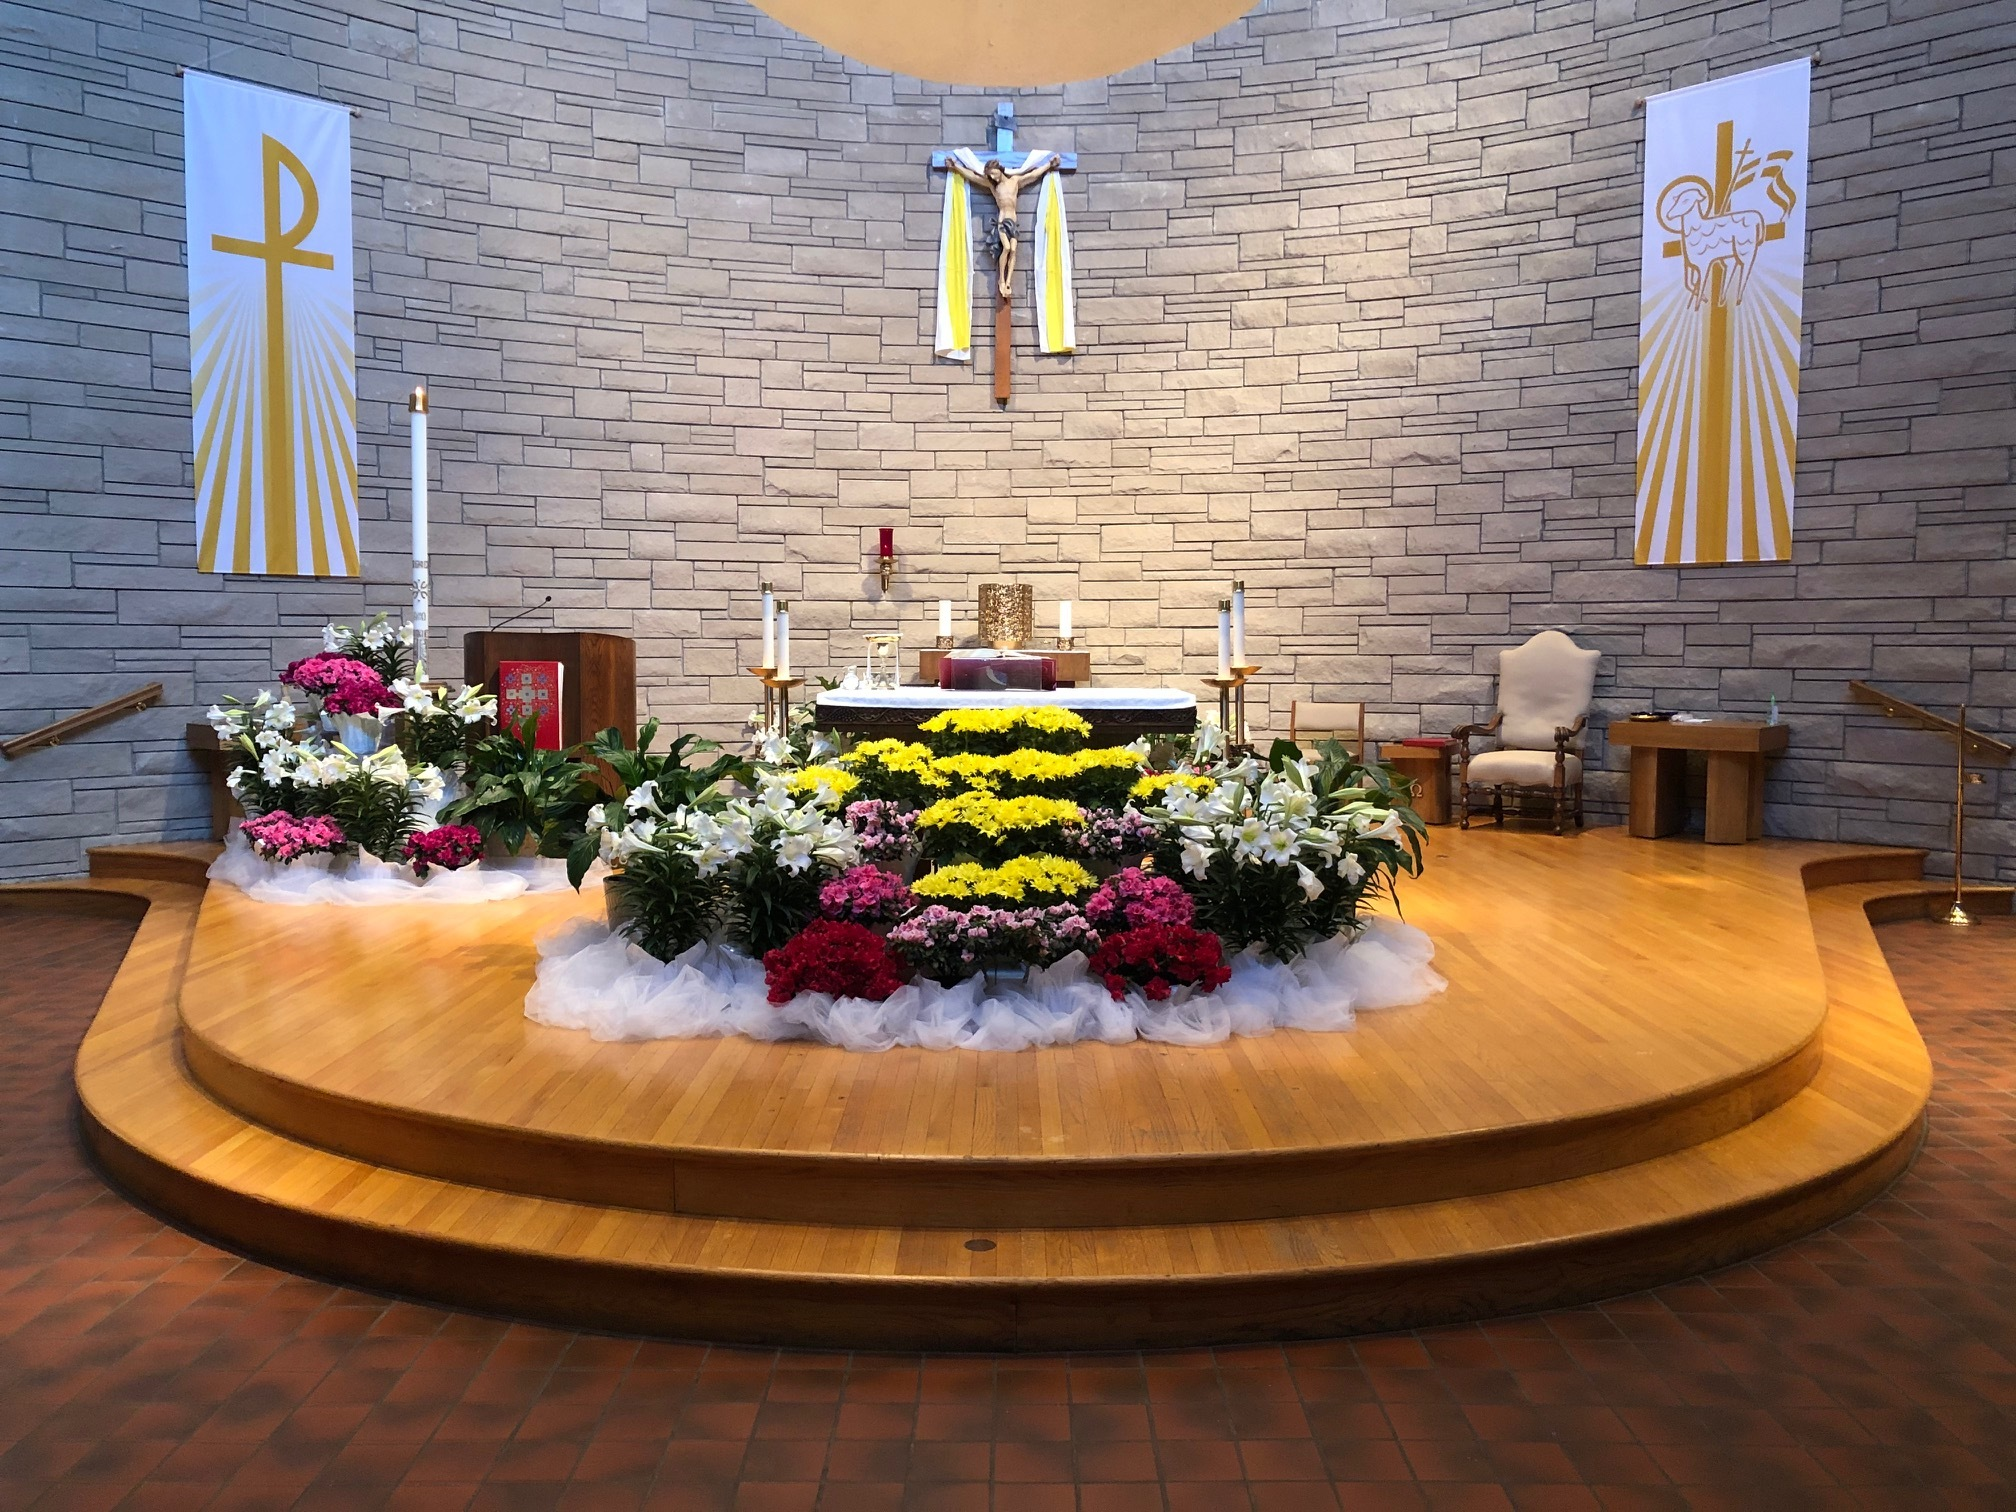 Welcome to Our Lady of the Lakes Catholic Church